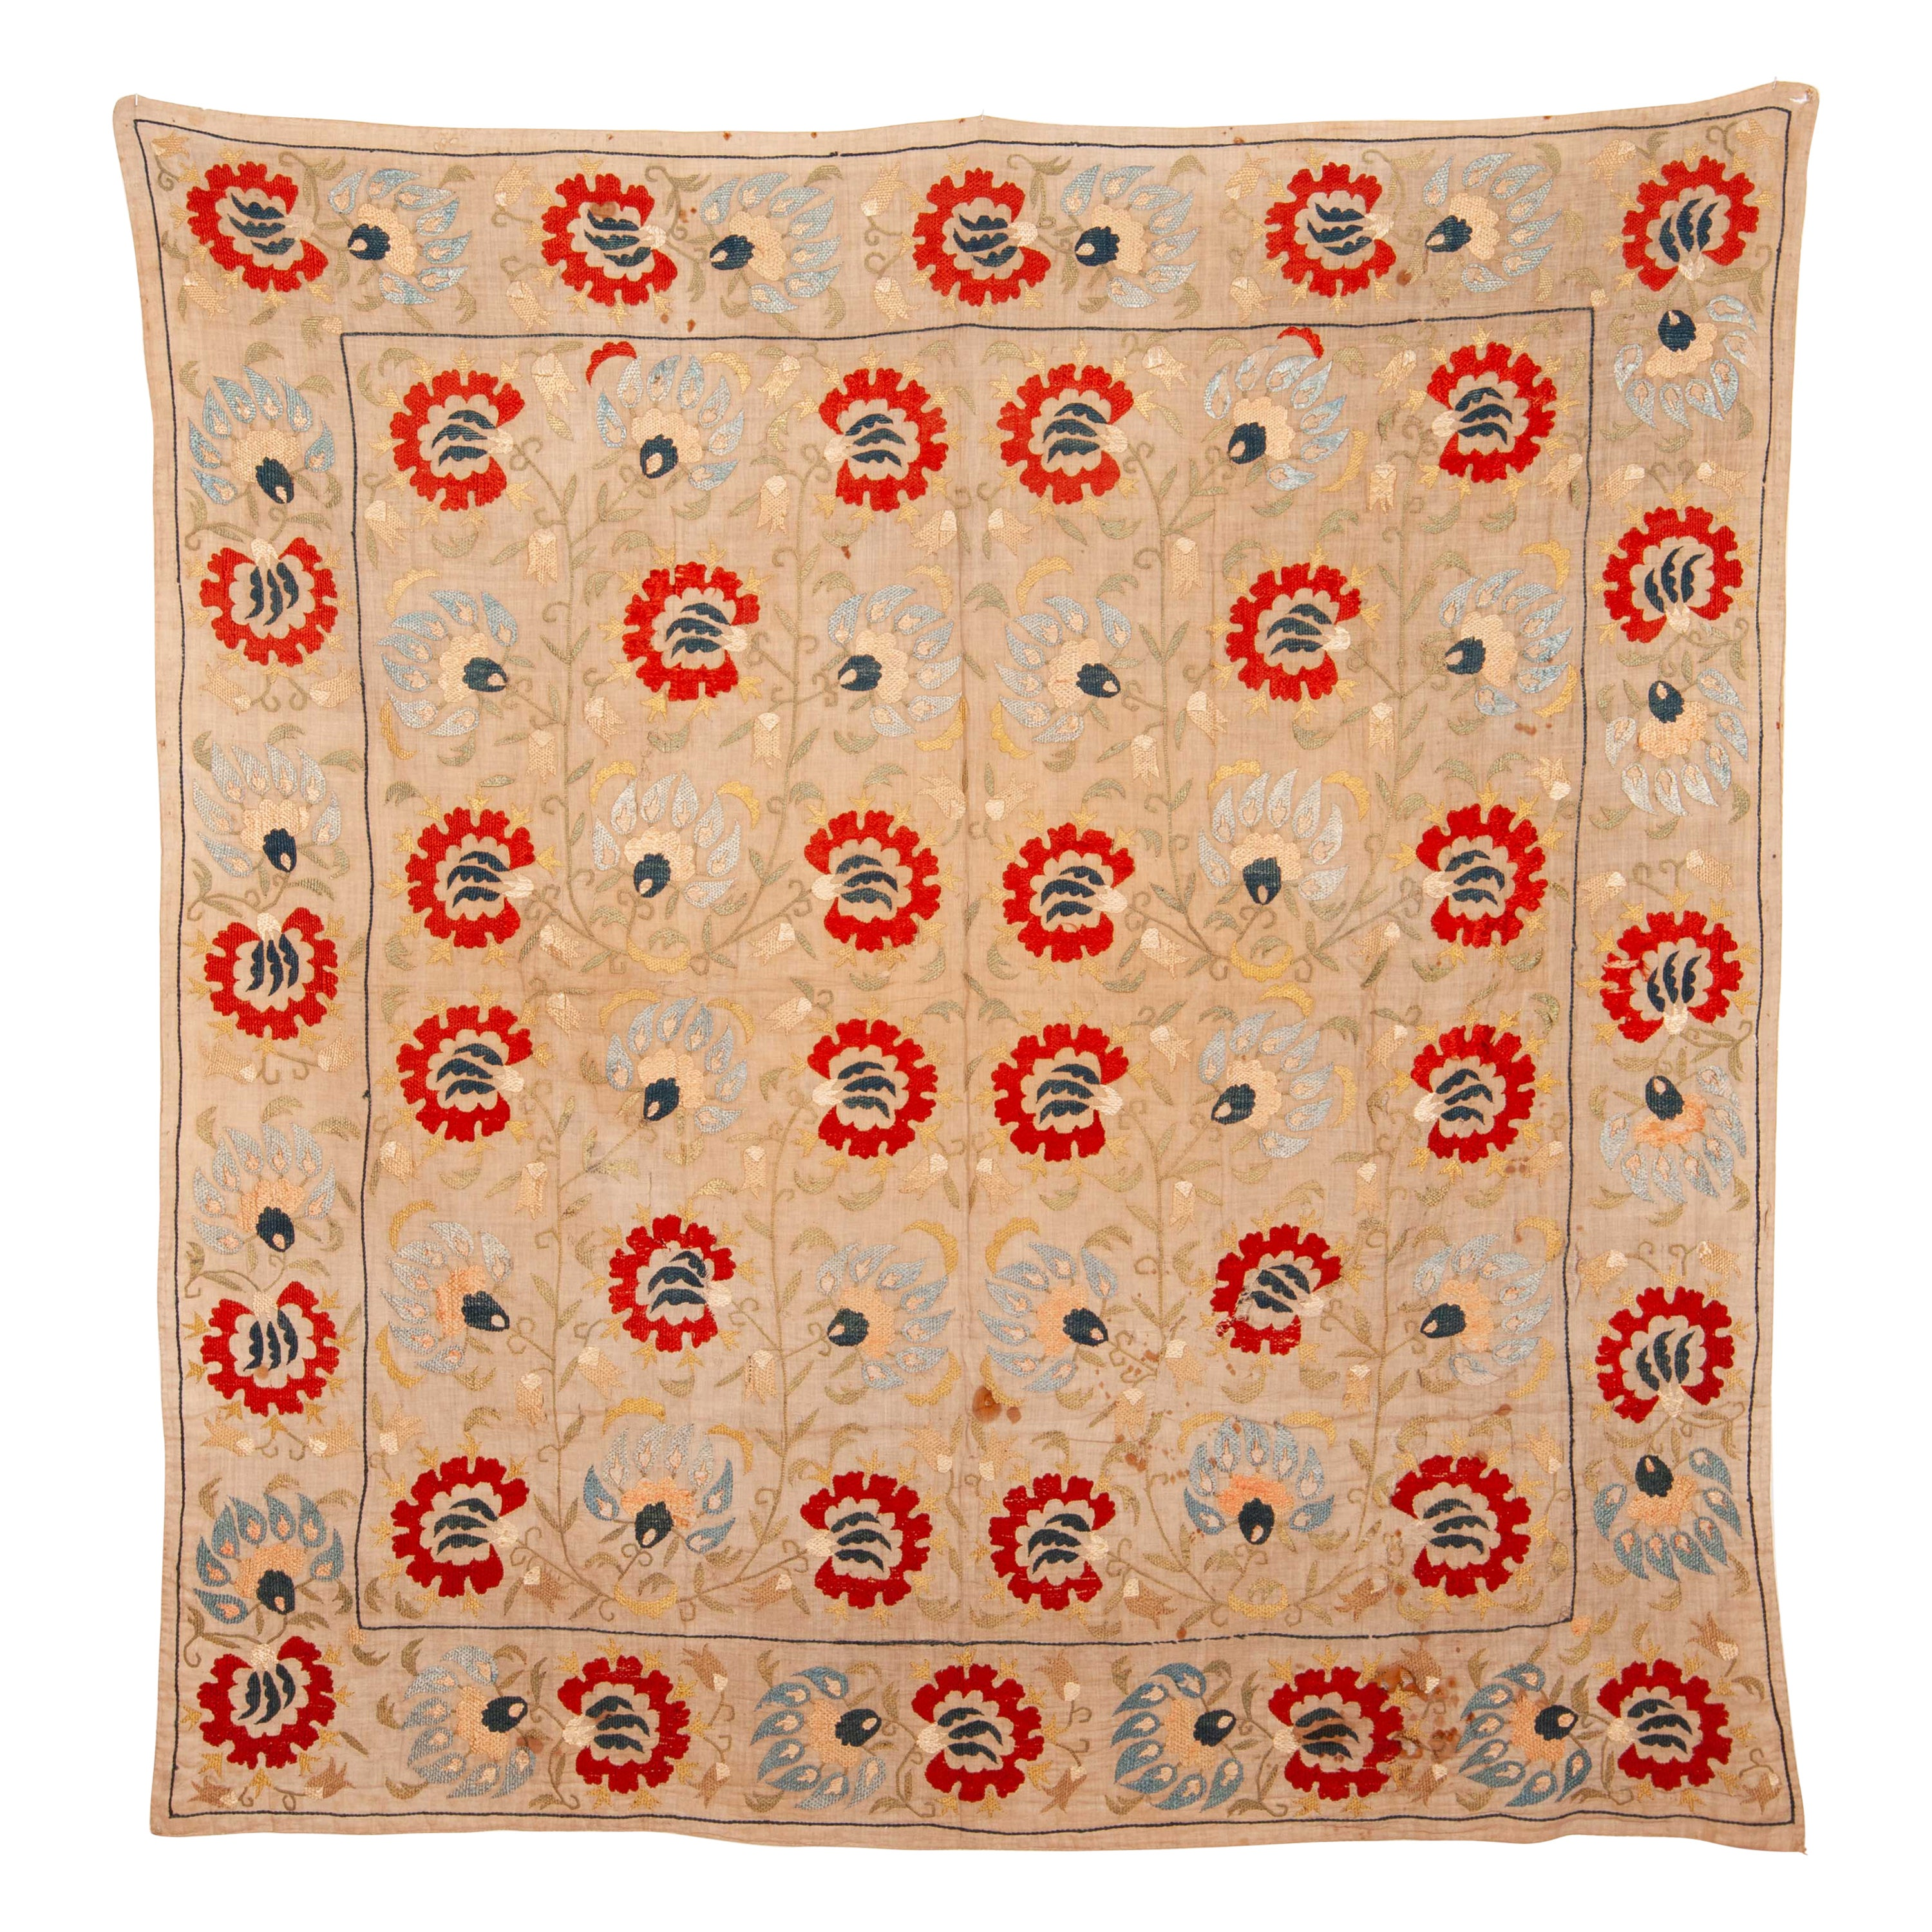 Ottoman Turkish Bokhce 'Wrapping Cloth', Early 19th Century